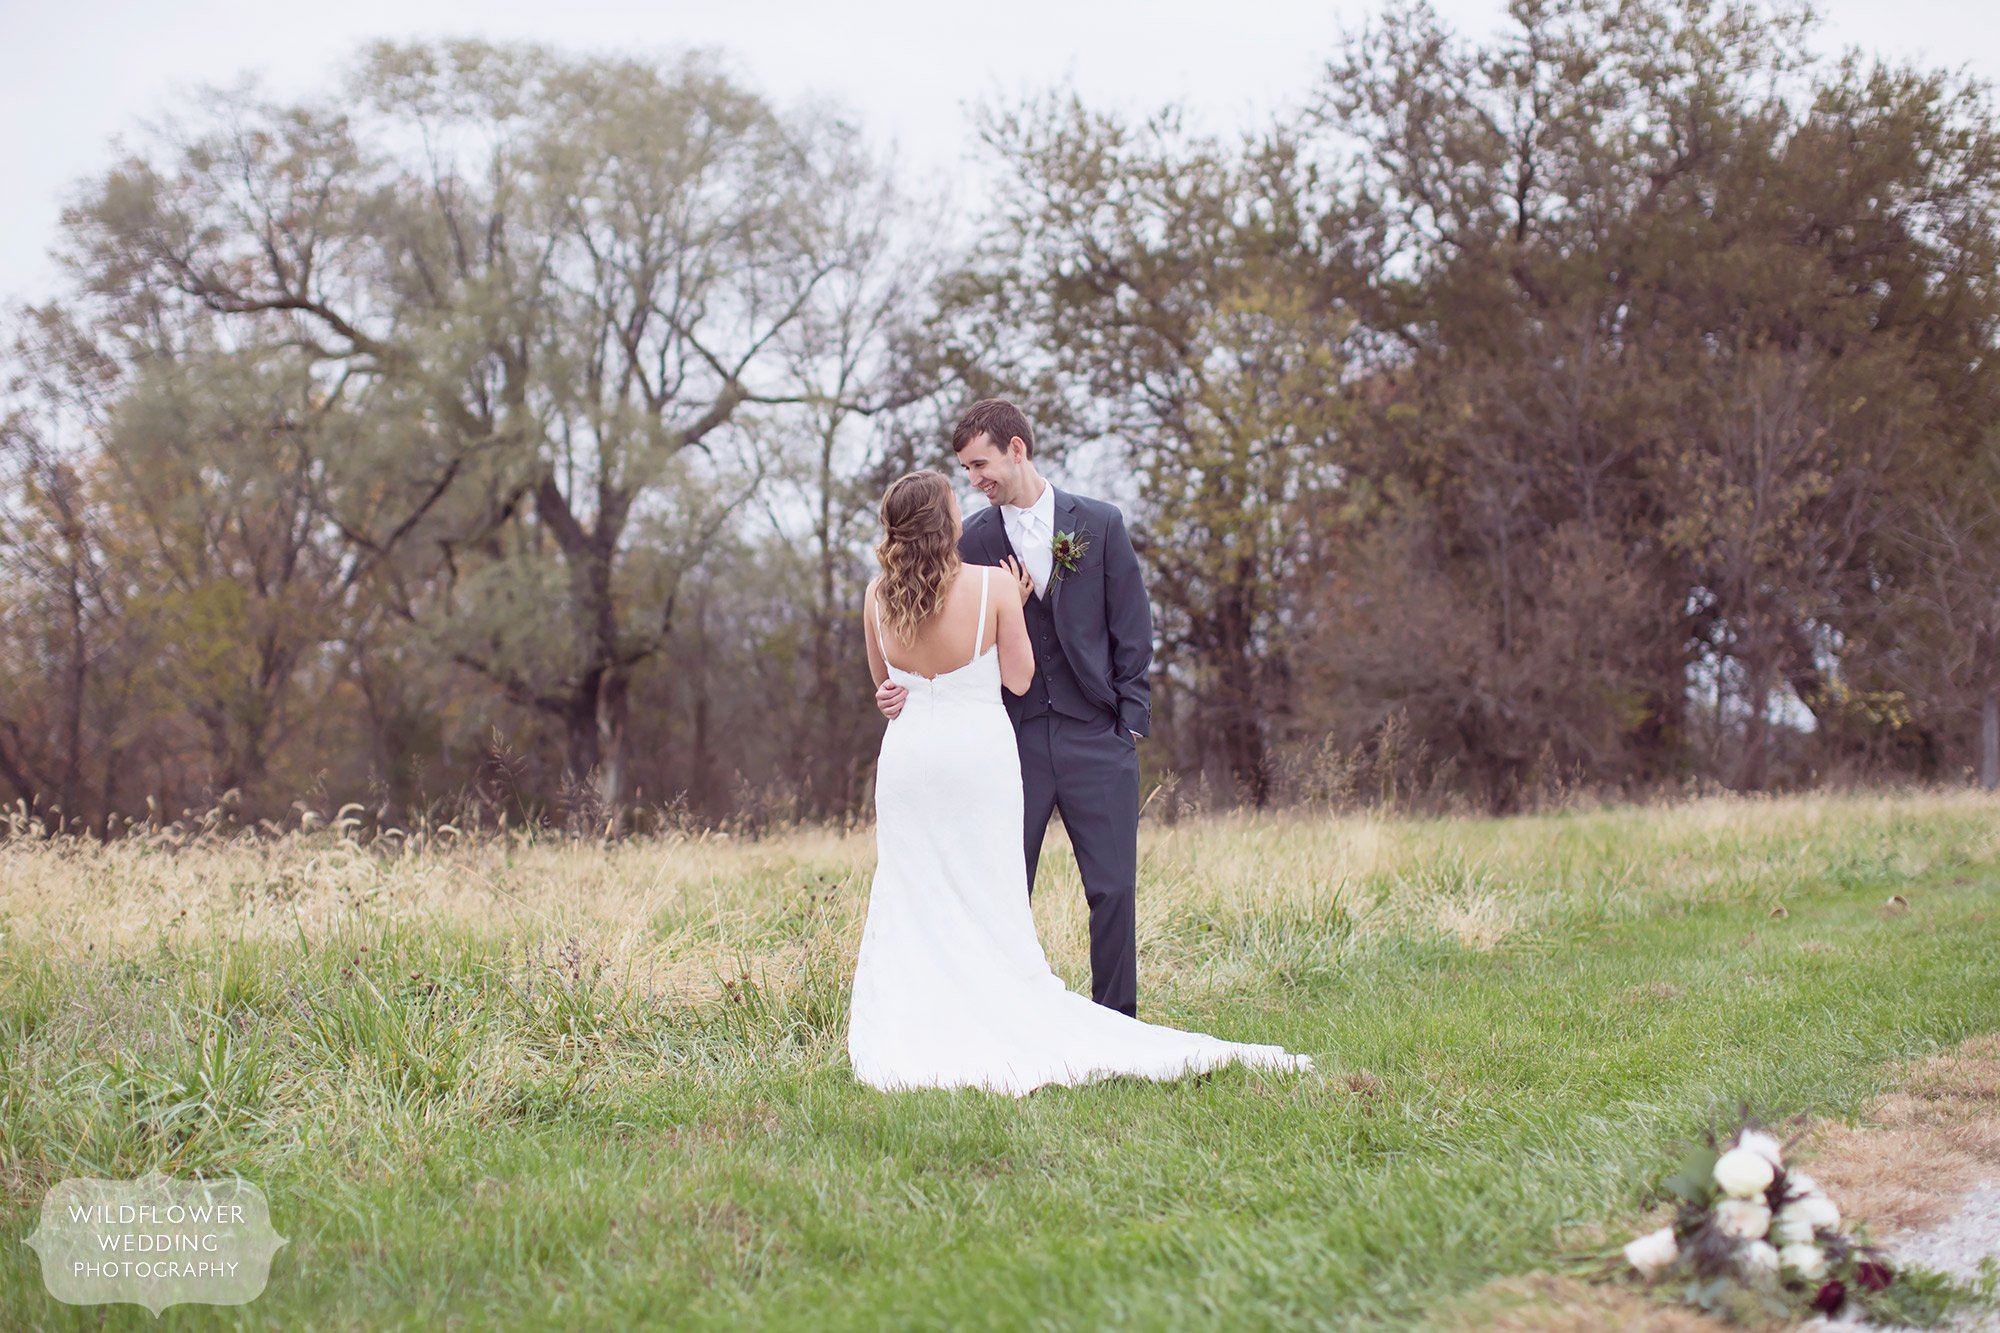 The bride and groom embrace in a grassy field at the Blue Bell Farm in Fayette, MO.